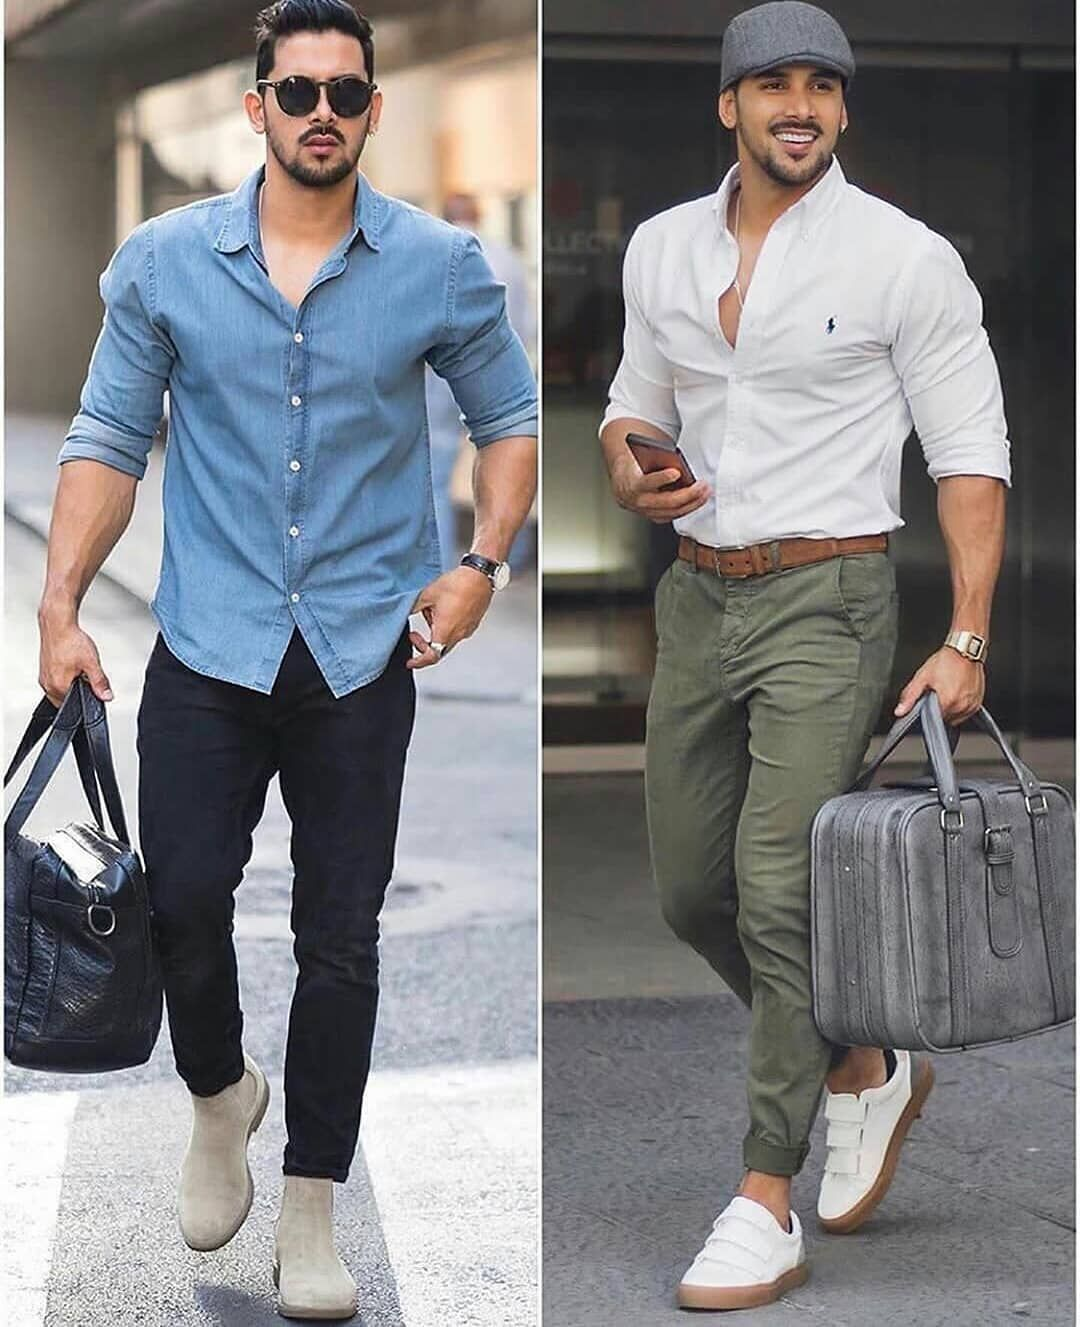 Pin By Bolivar Palomeque On Moda Hombre In 2020 Casual Wear For Men Mens Outfits Latest Mens Fashion Trends